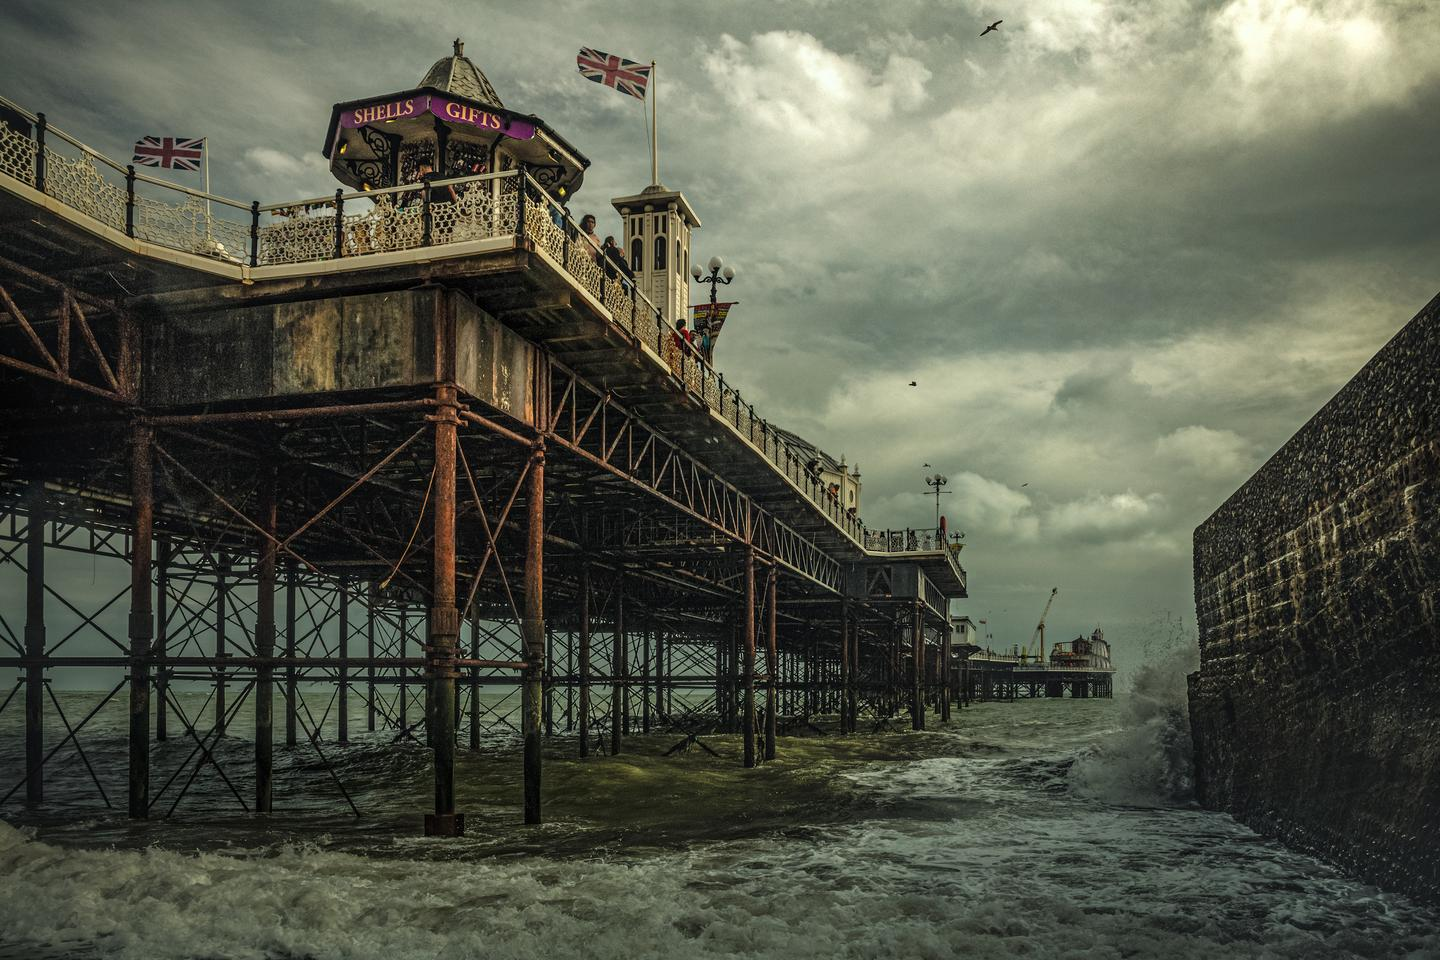 Historic Photographer of the Year. Overall Winner. The Brighton Palace Pier